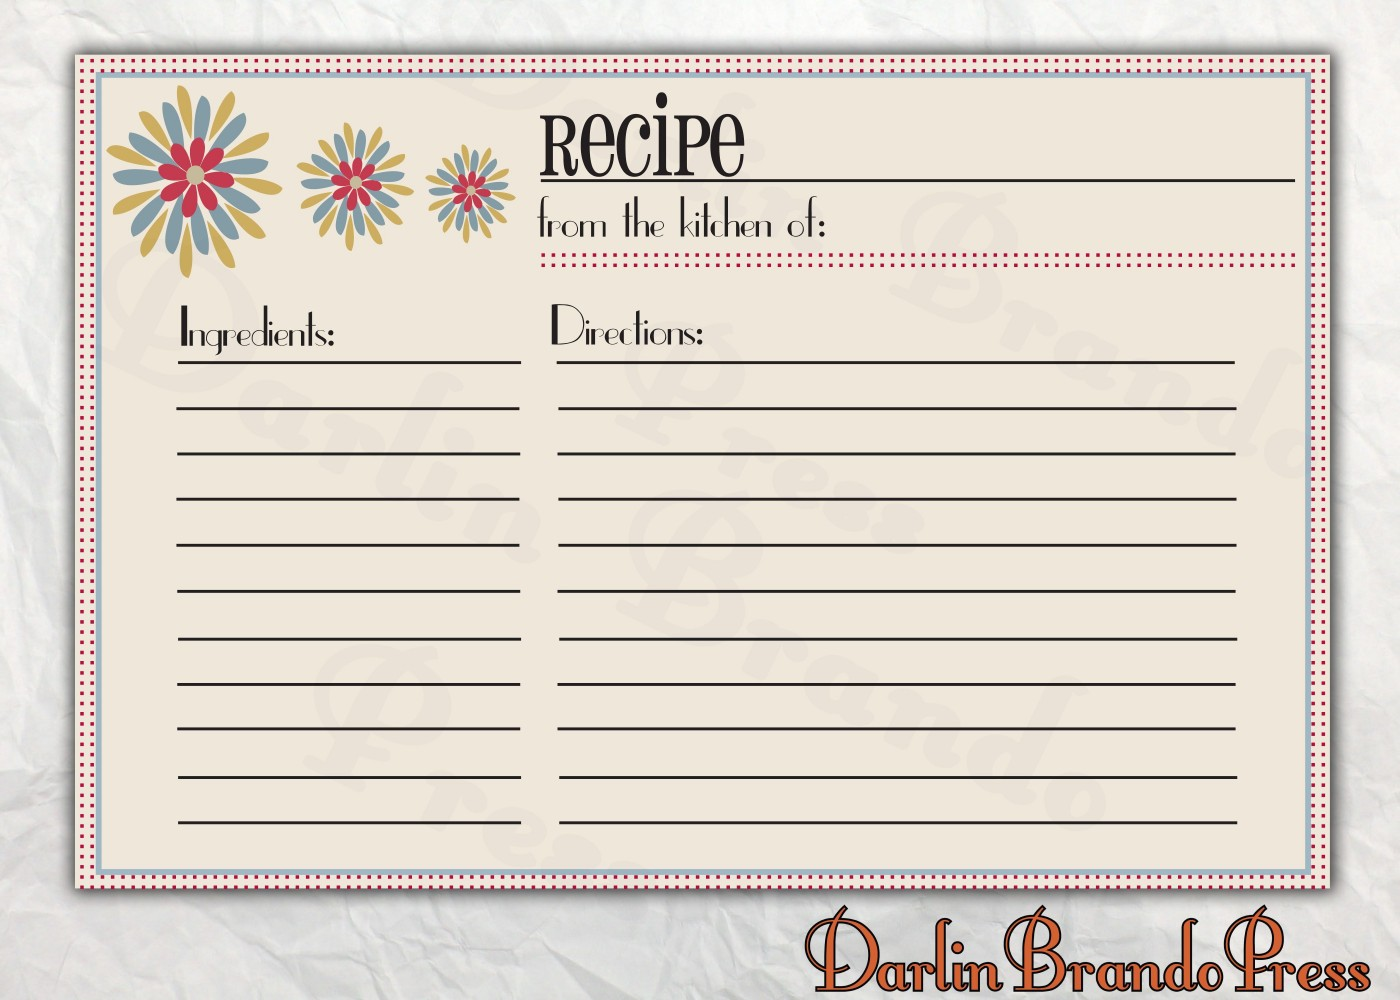 006 Astounding 4 X 6 Recipe Card Template Microsoft Word Inspiration 1400